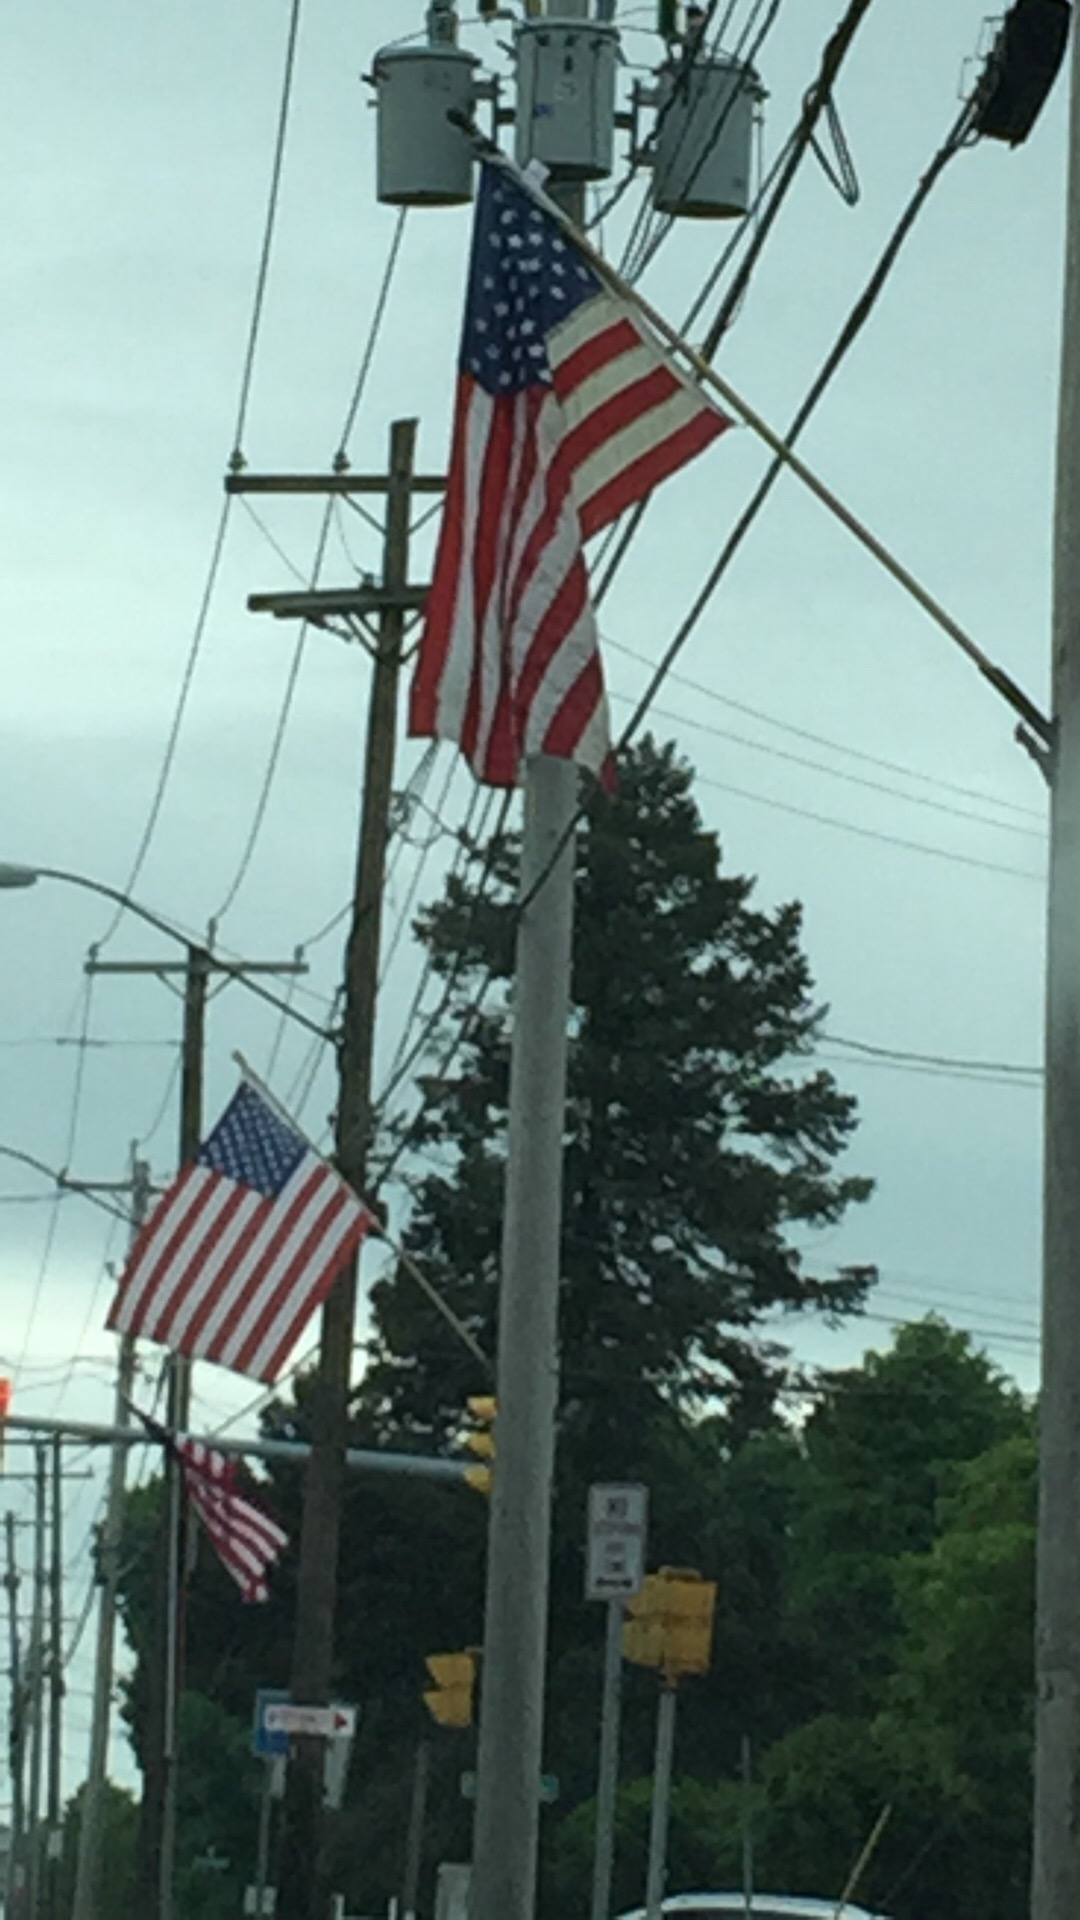 2016 American Flags on James St.